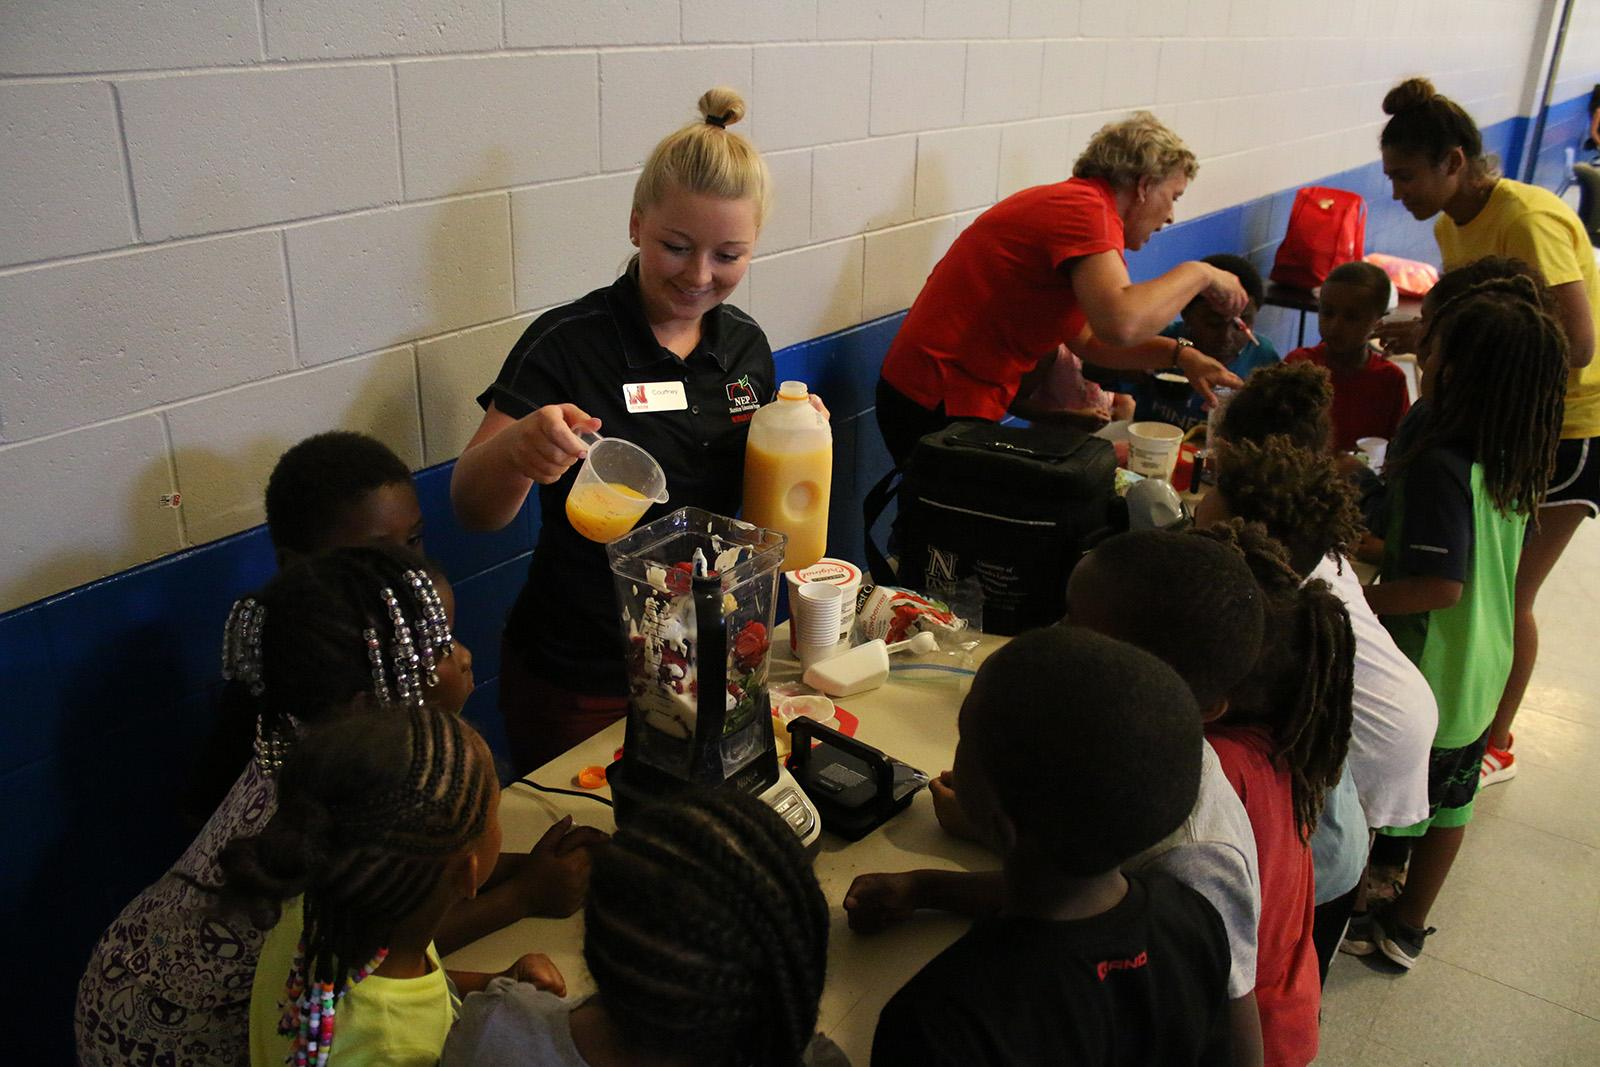 Group of youth helping make smoothies in blenders